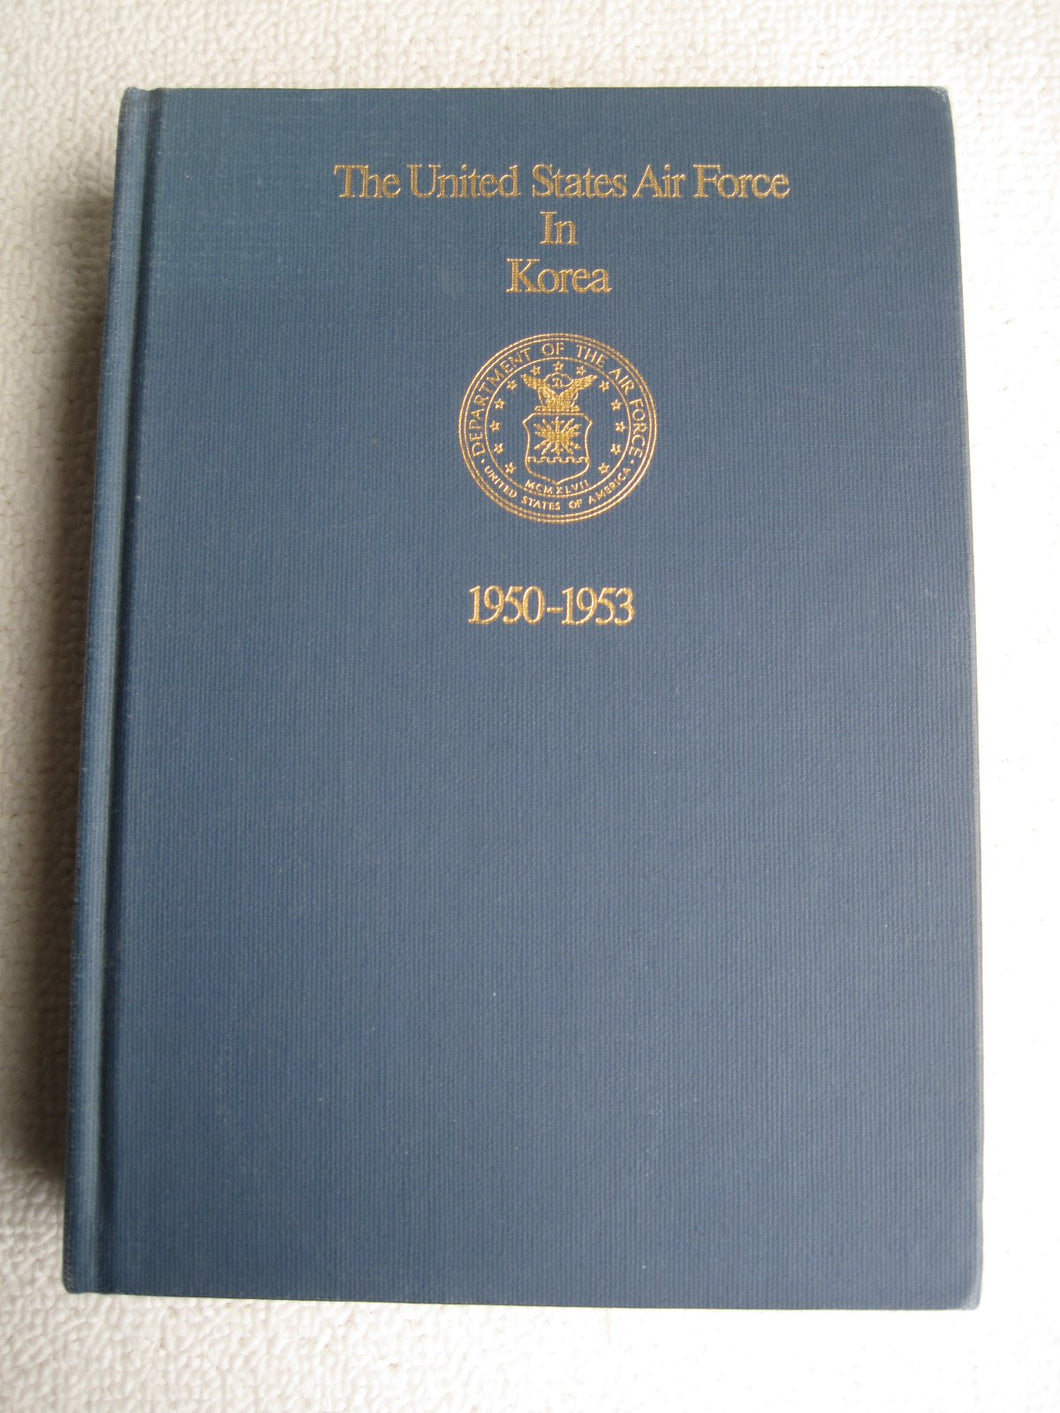 The United States Air Force in Korea, 1950-1953 0870004887